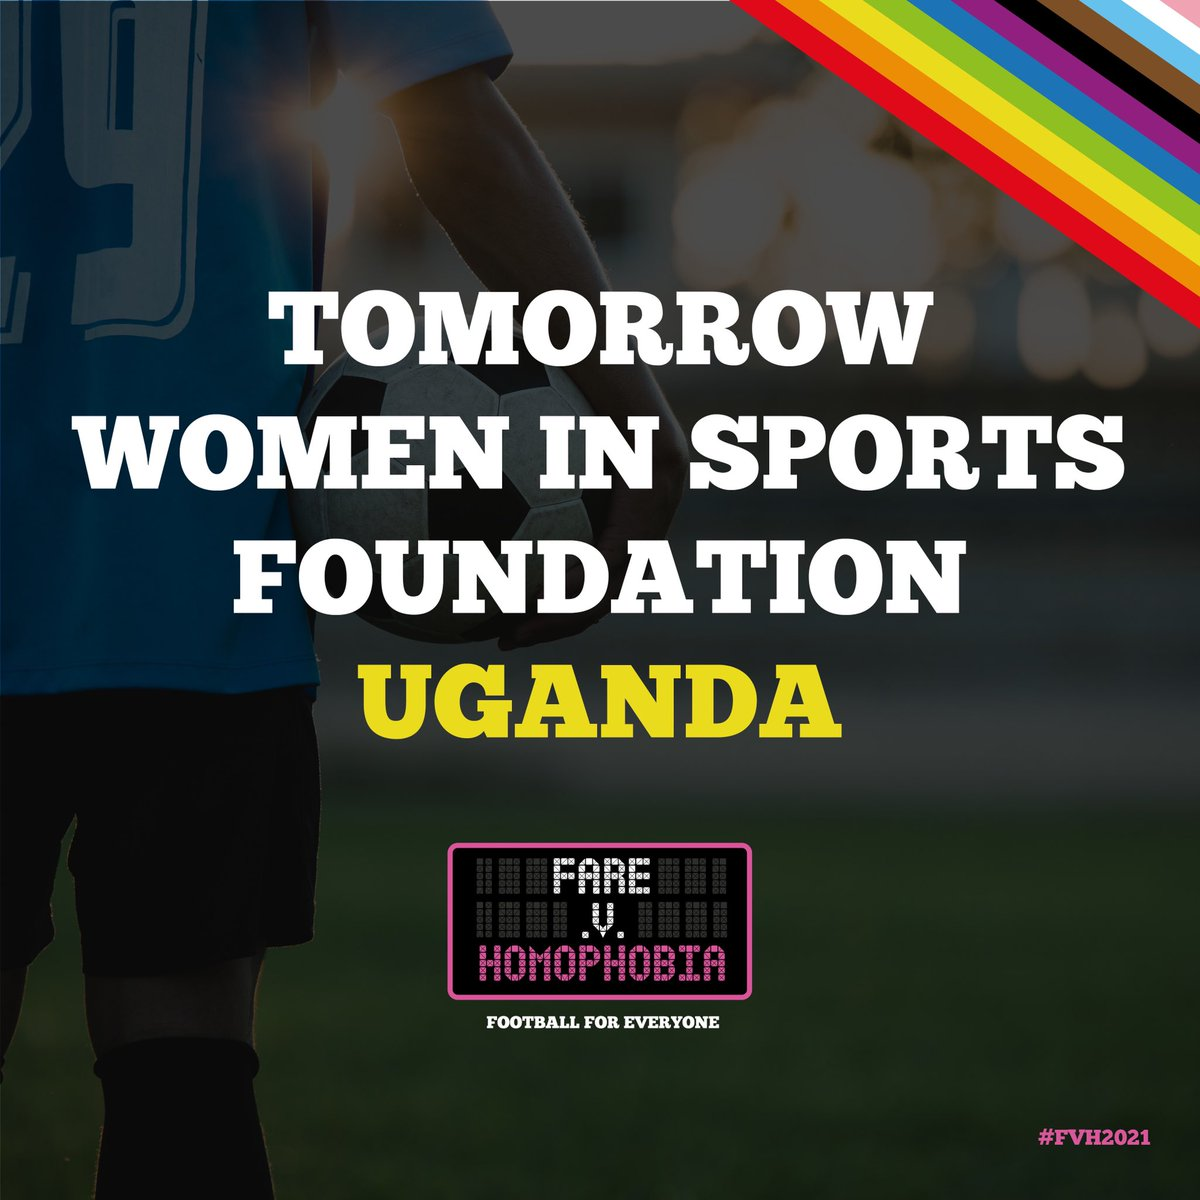 🇺🇬 Tomorrow Women in Sports Foundation @TWISF2 in #Uganda are creating waves thrush their inclusion through football work.   They plan a much-needed campaign to fight against homophobia among sports fans and educate LGBTIQ+ footballers on their rights as players